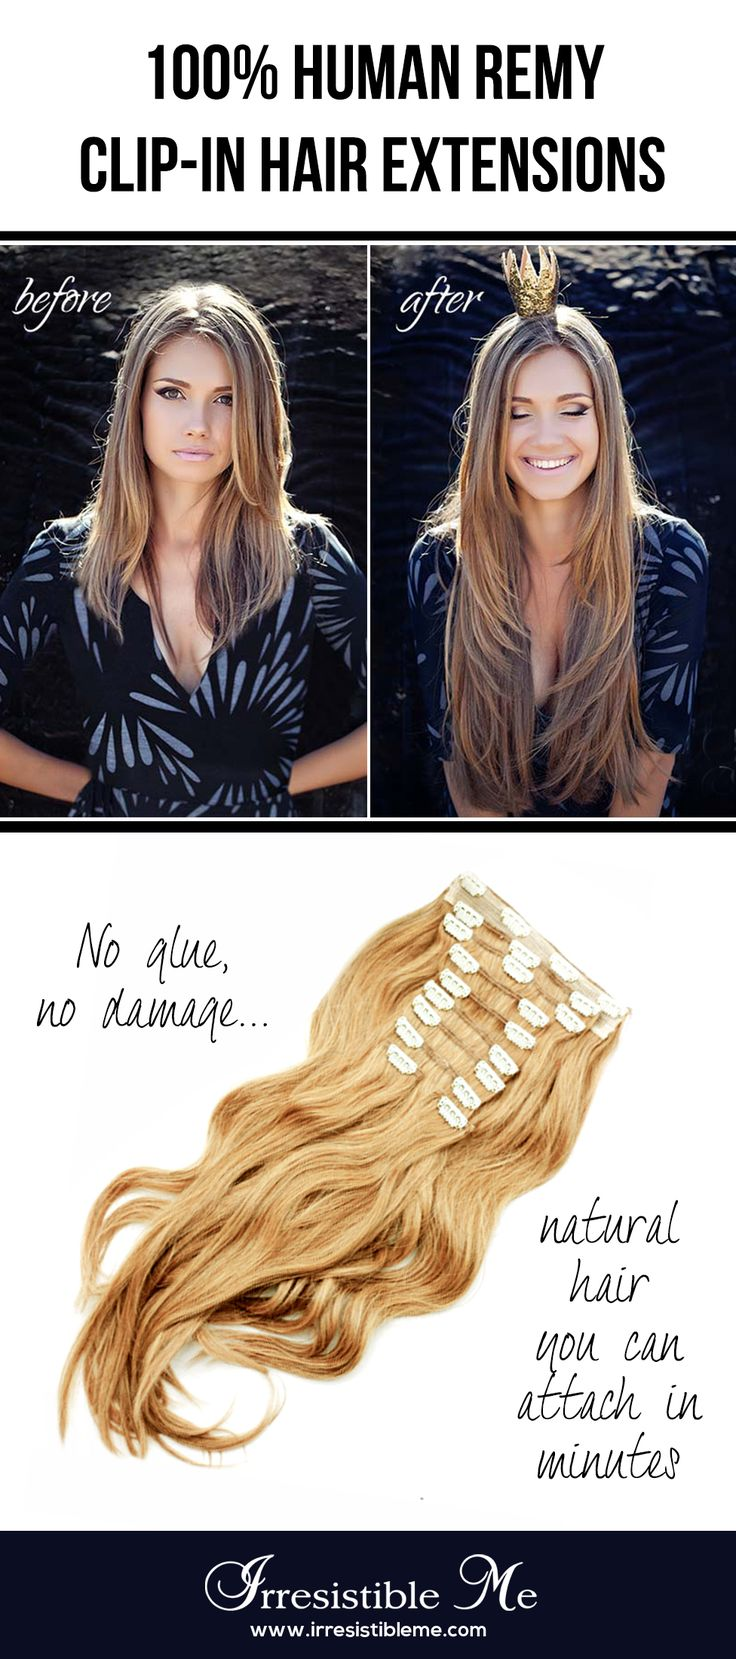 Best 25 best human hair extensions ideas on pinterest best get long hair in less than 5 minutes with irresistible me 100 human remy clip in hair extensions the before and after change is totally awesome and nobody pmusecretfo Images